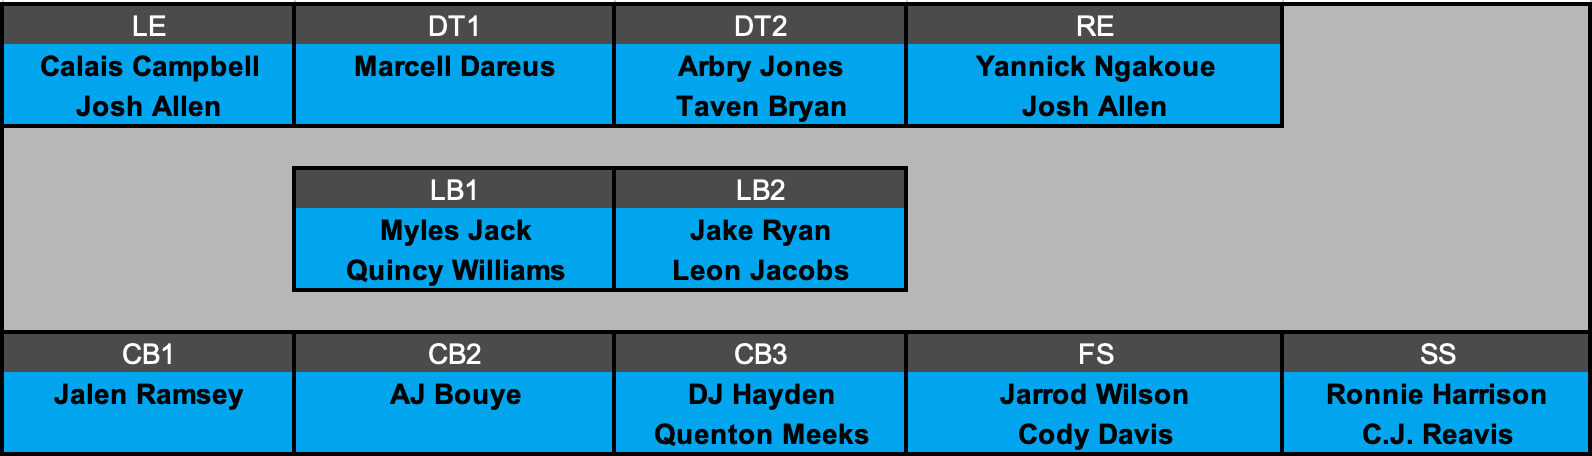 Jacksonville Jaguars Projected Defensive Depth Chart